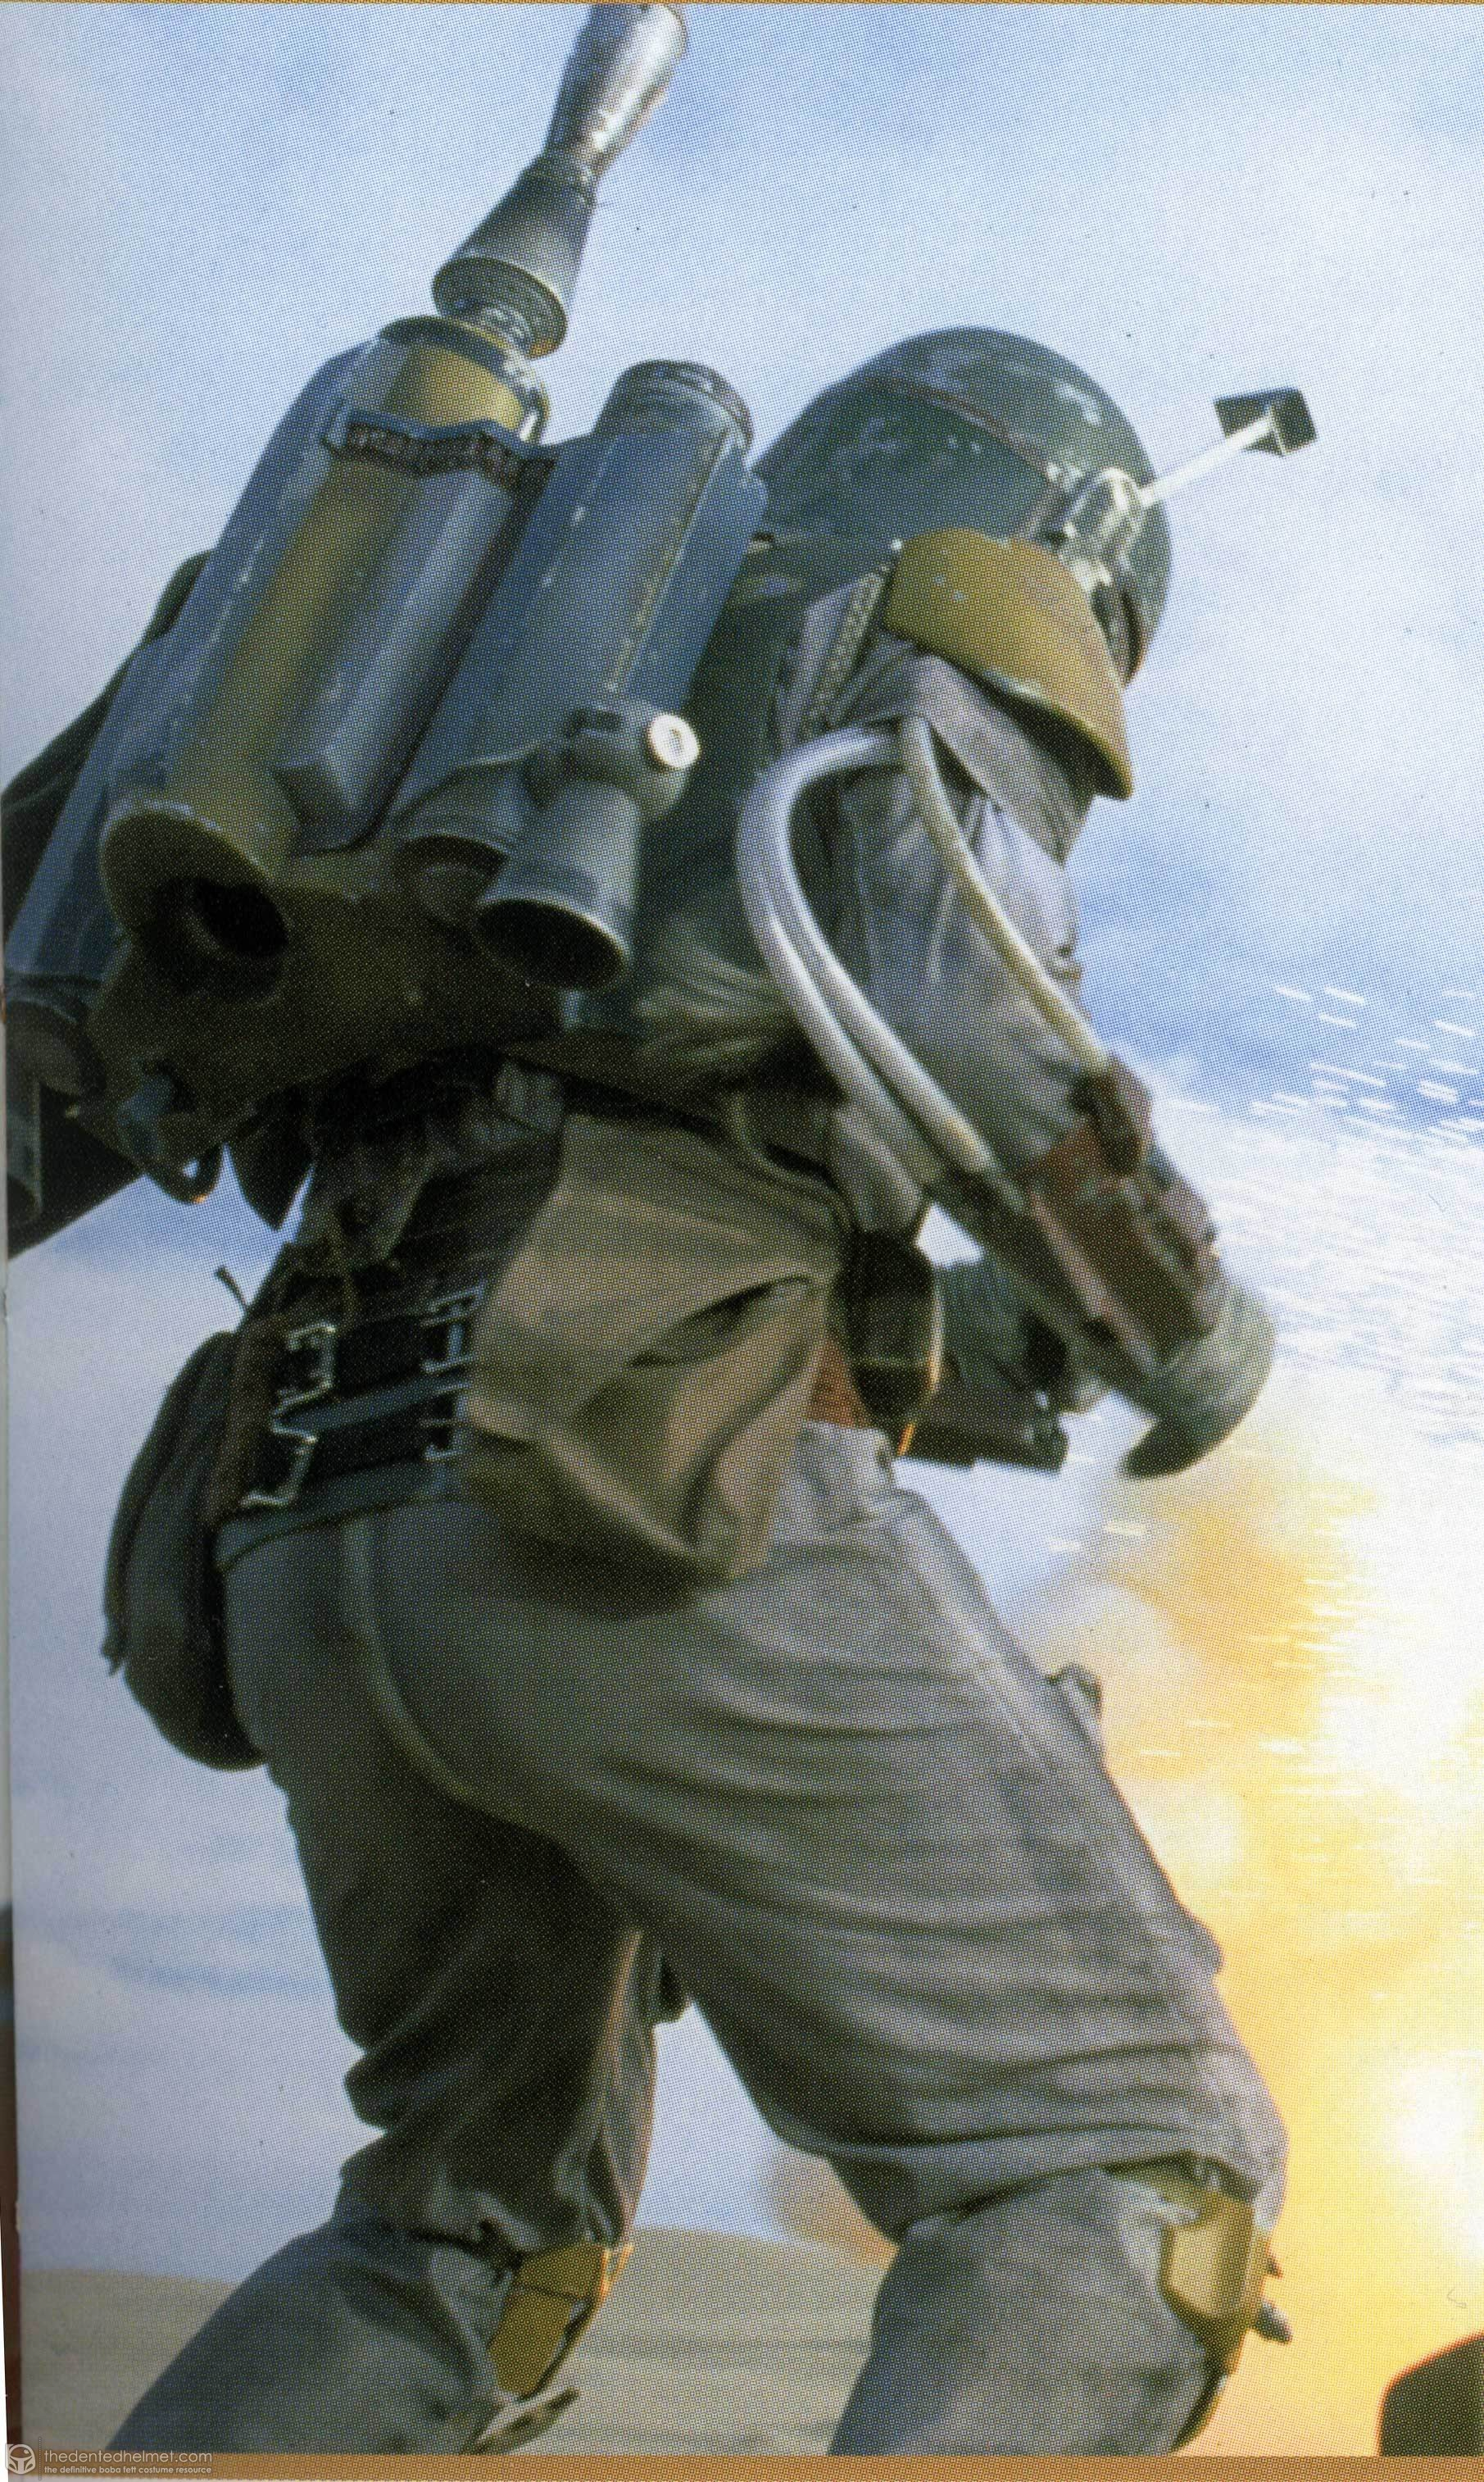 Boba-Fett-Costume-Return-of-the-Jedi-Skiff-05.jpg